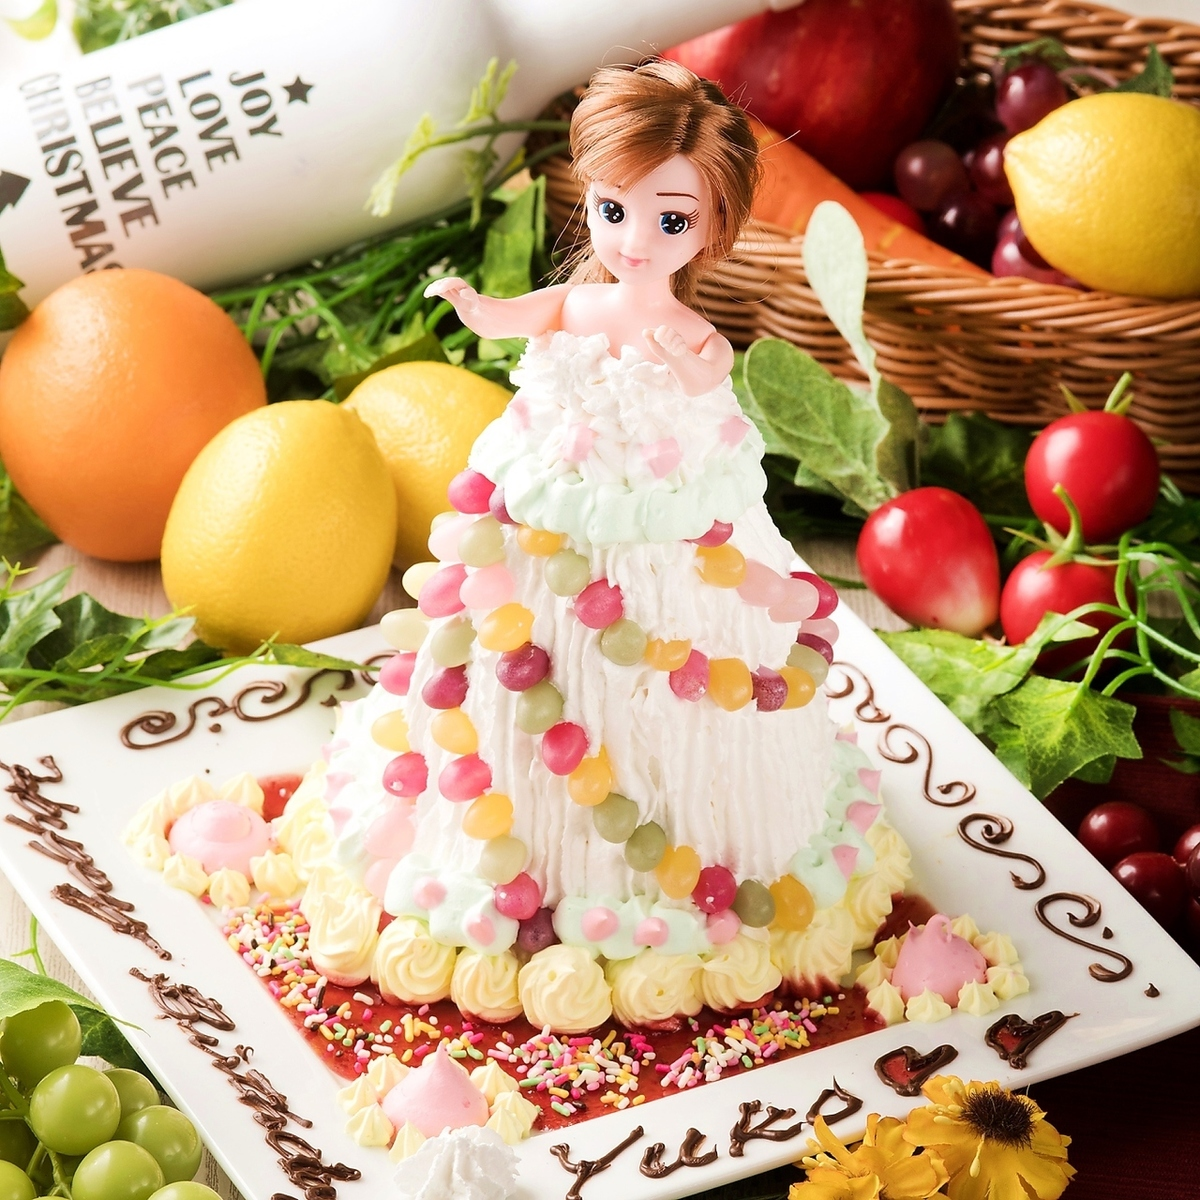 Photogenic ♪ Doll cake appeared ☆